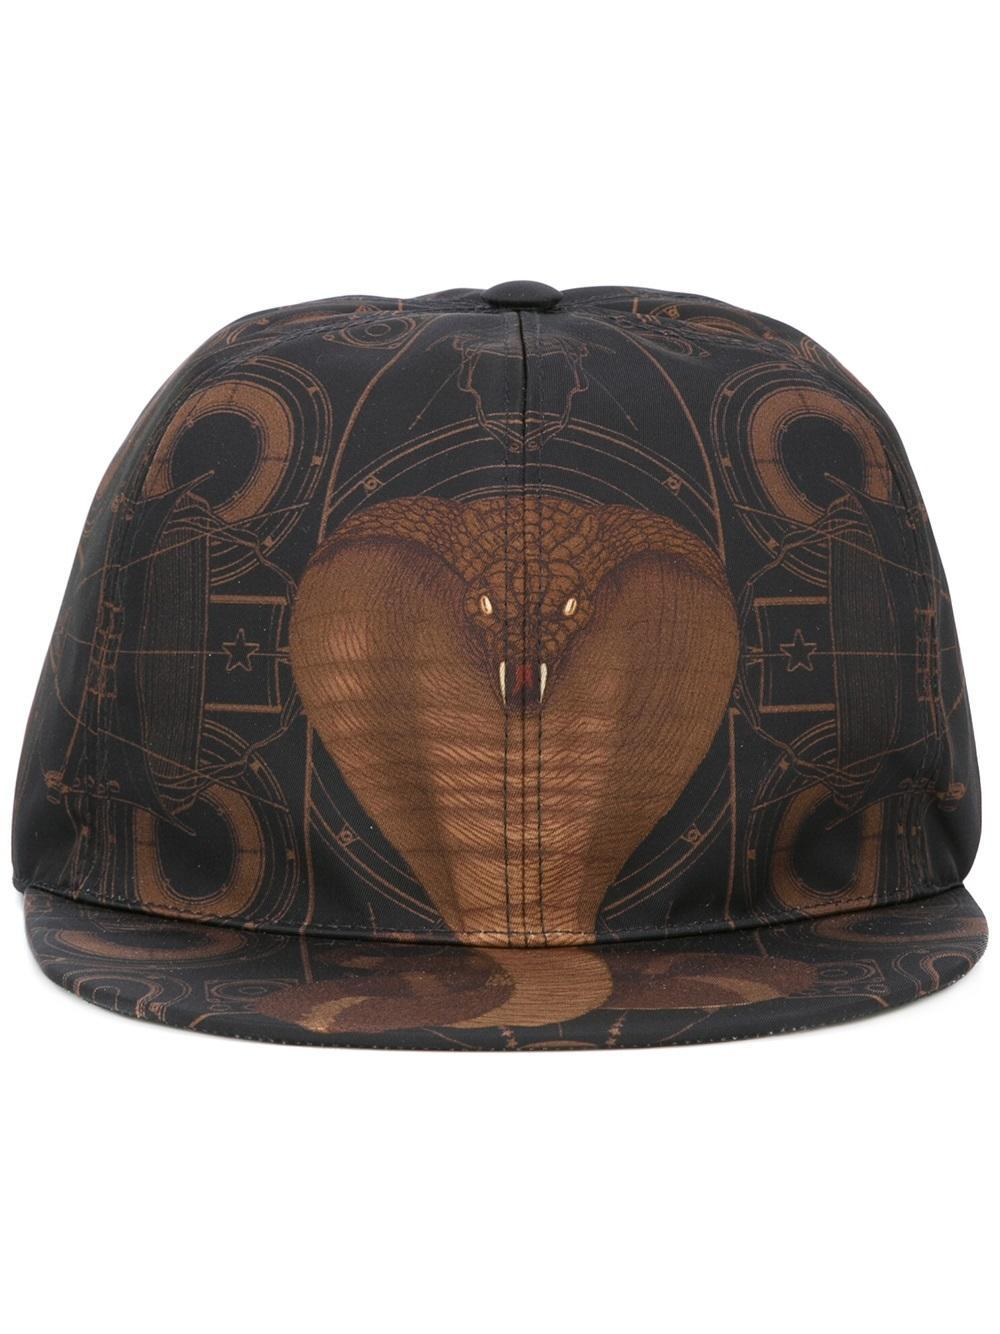 291c404da7e Lyst - Givenchy Cobra Print Hat in Black for Men